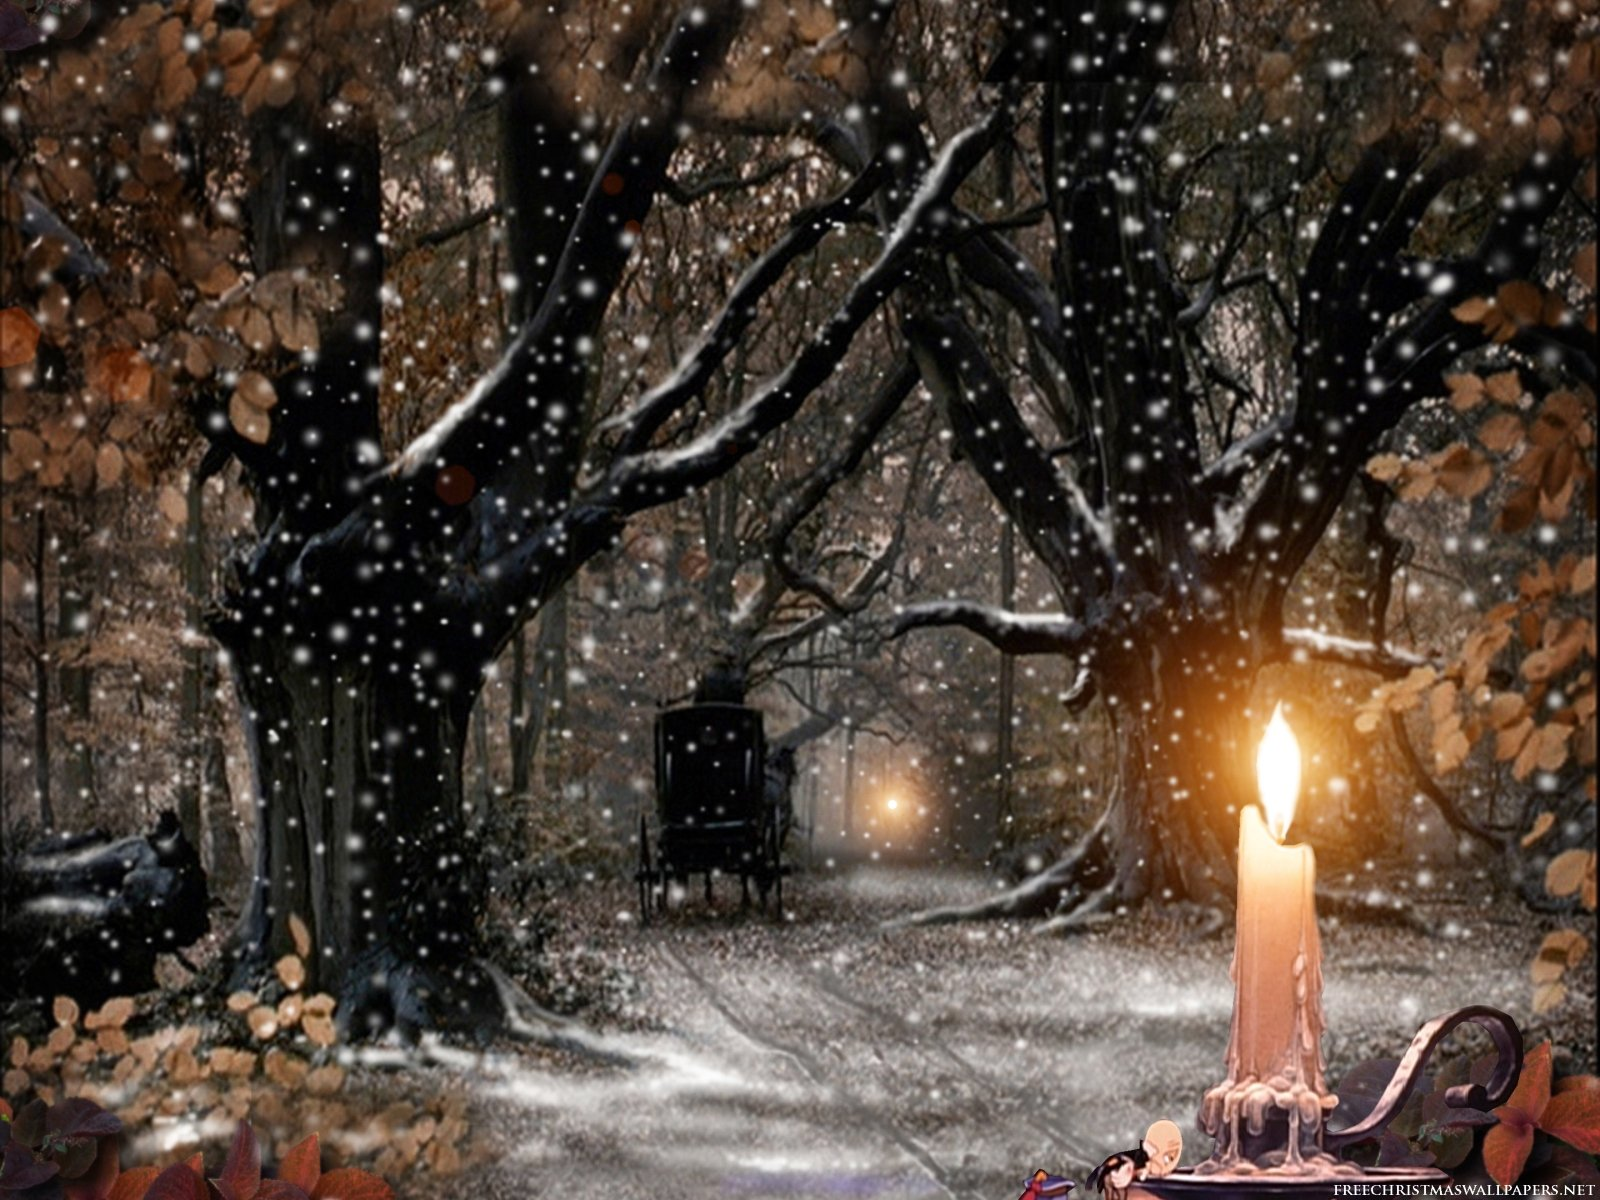 Wallpapers   Download Christmas Candle Wallpapers   Pc Wallpapers 1600x1200